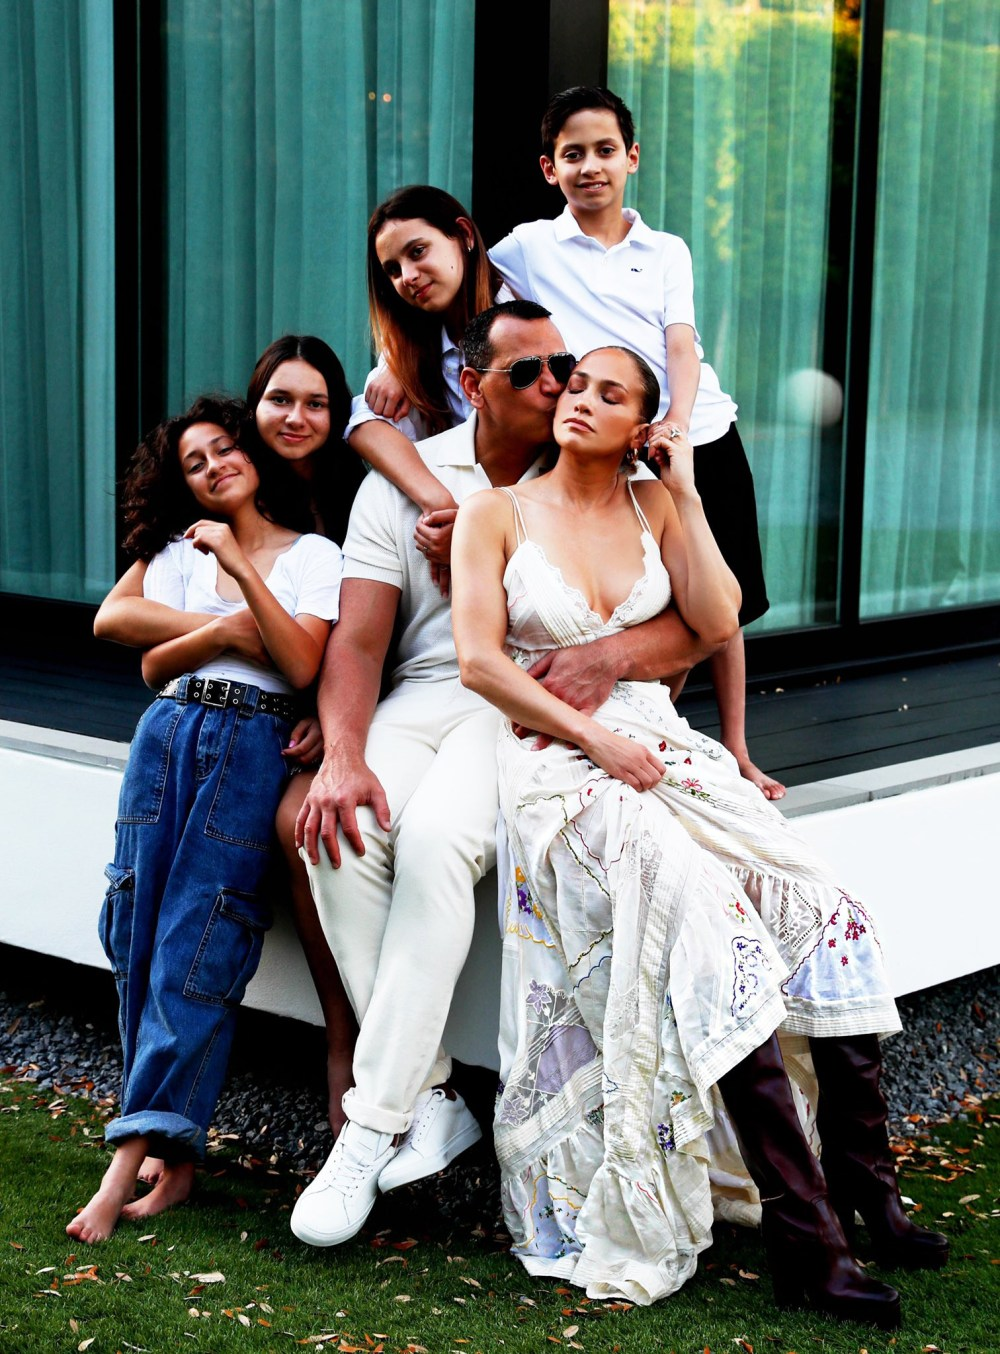 Jennifer Lopez, Alex Rodriguez and their kids share beautiful blended family photo to celebrate Labour Day